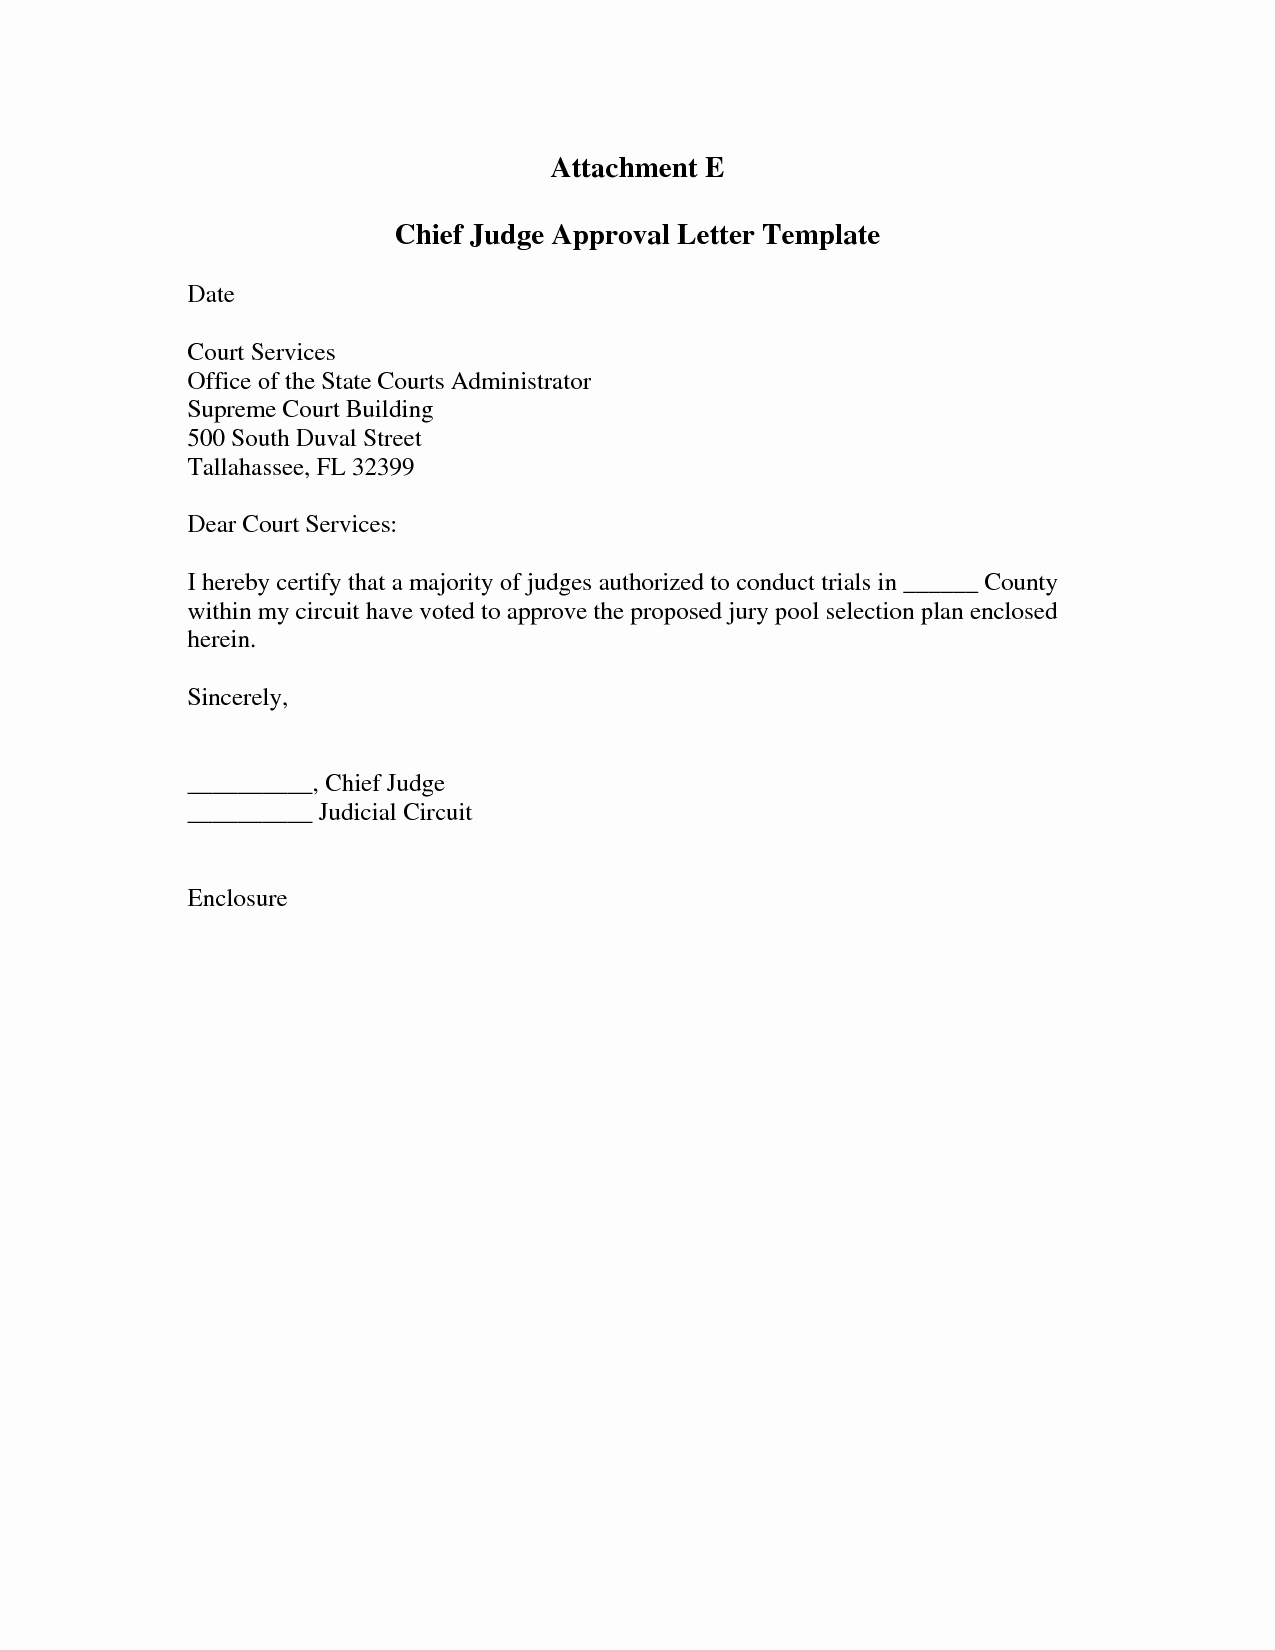 How to Write A Letter to A Judge Template Lovely Best S Of Re Mendation Letter to Judge Template